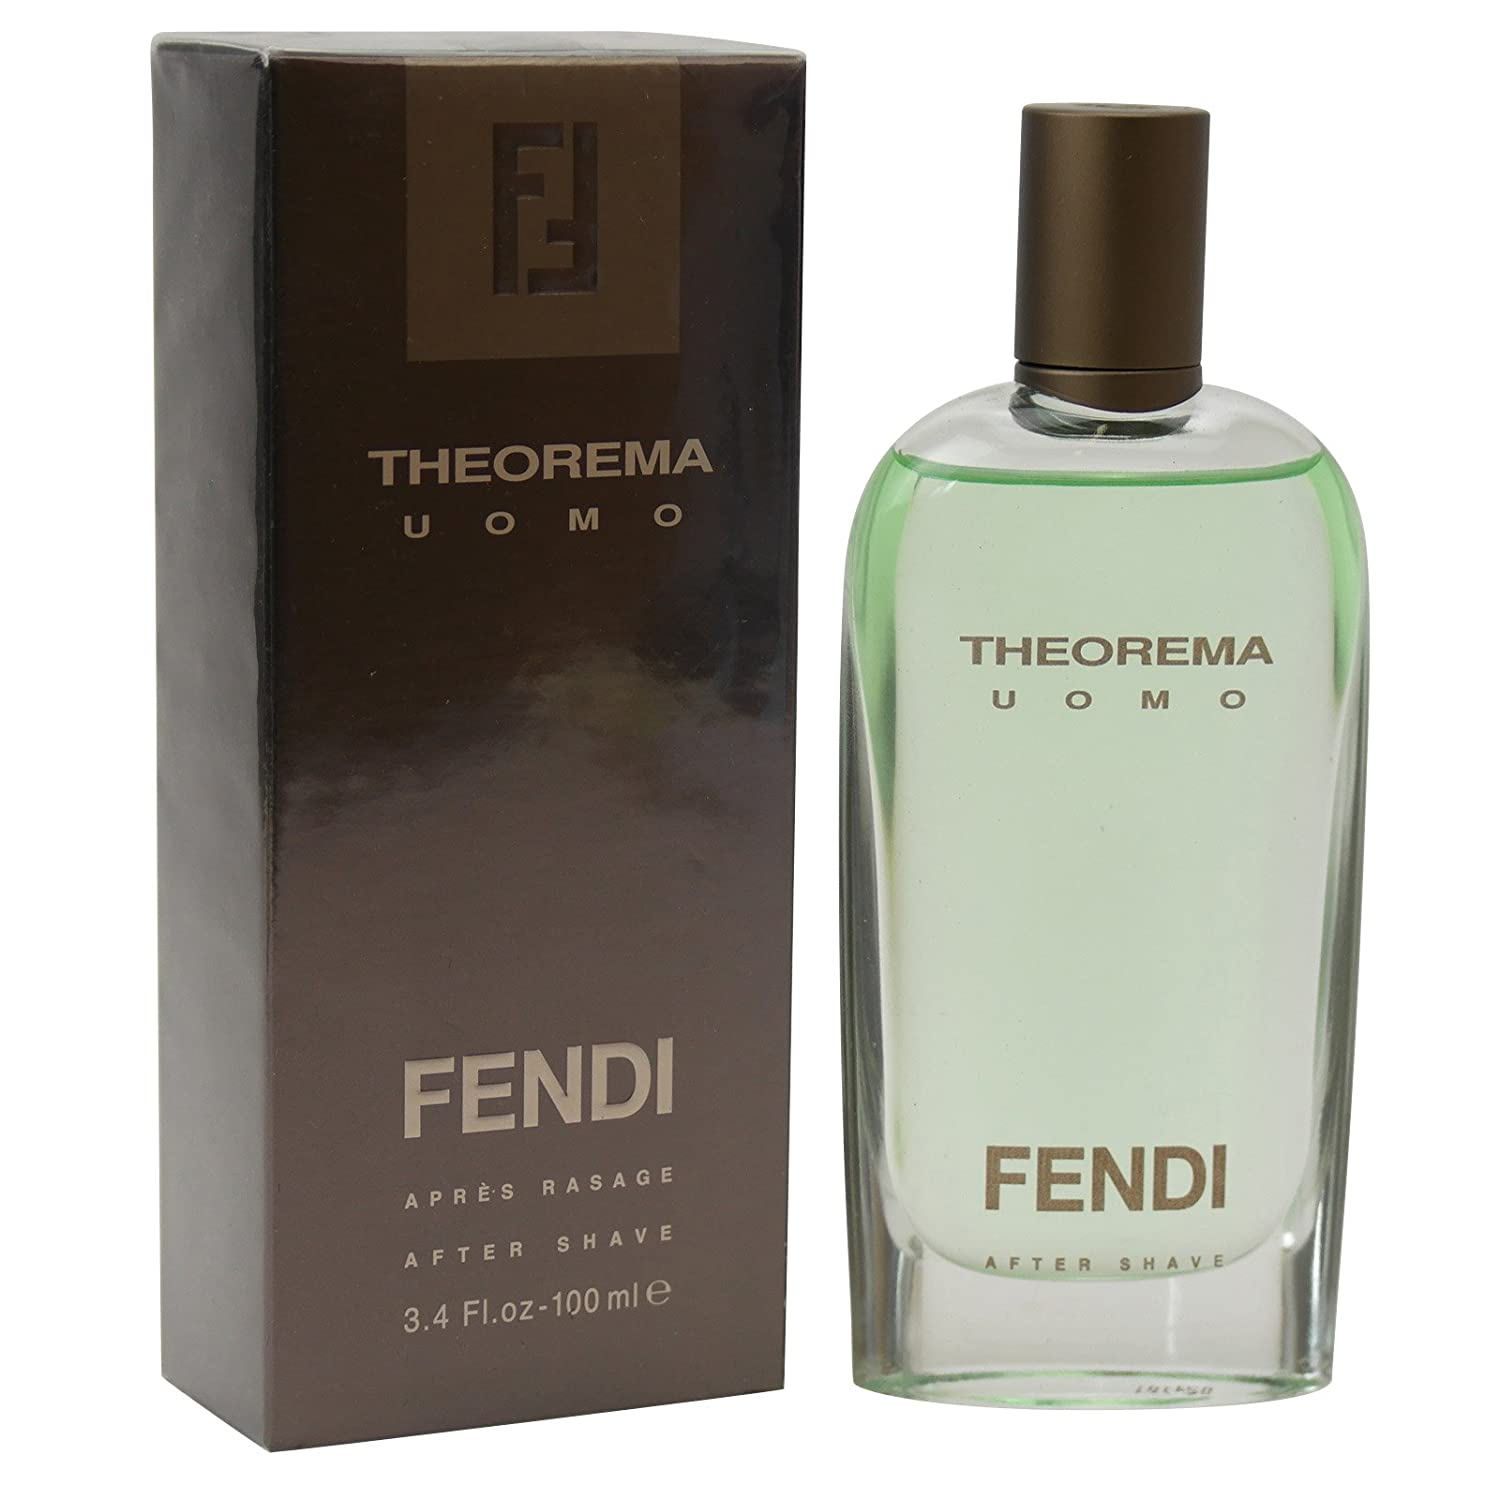 Fendi - Theorema Uomo For Men 100ml AFTERSHAVE